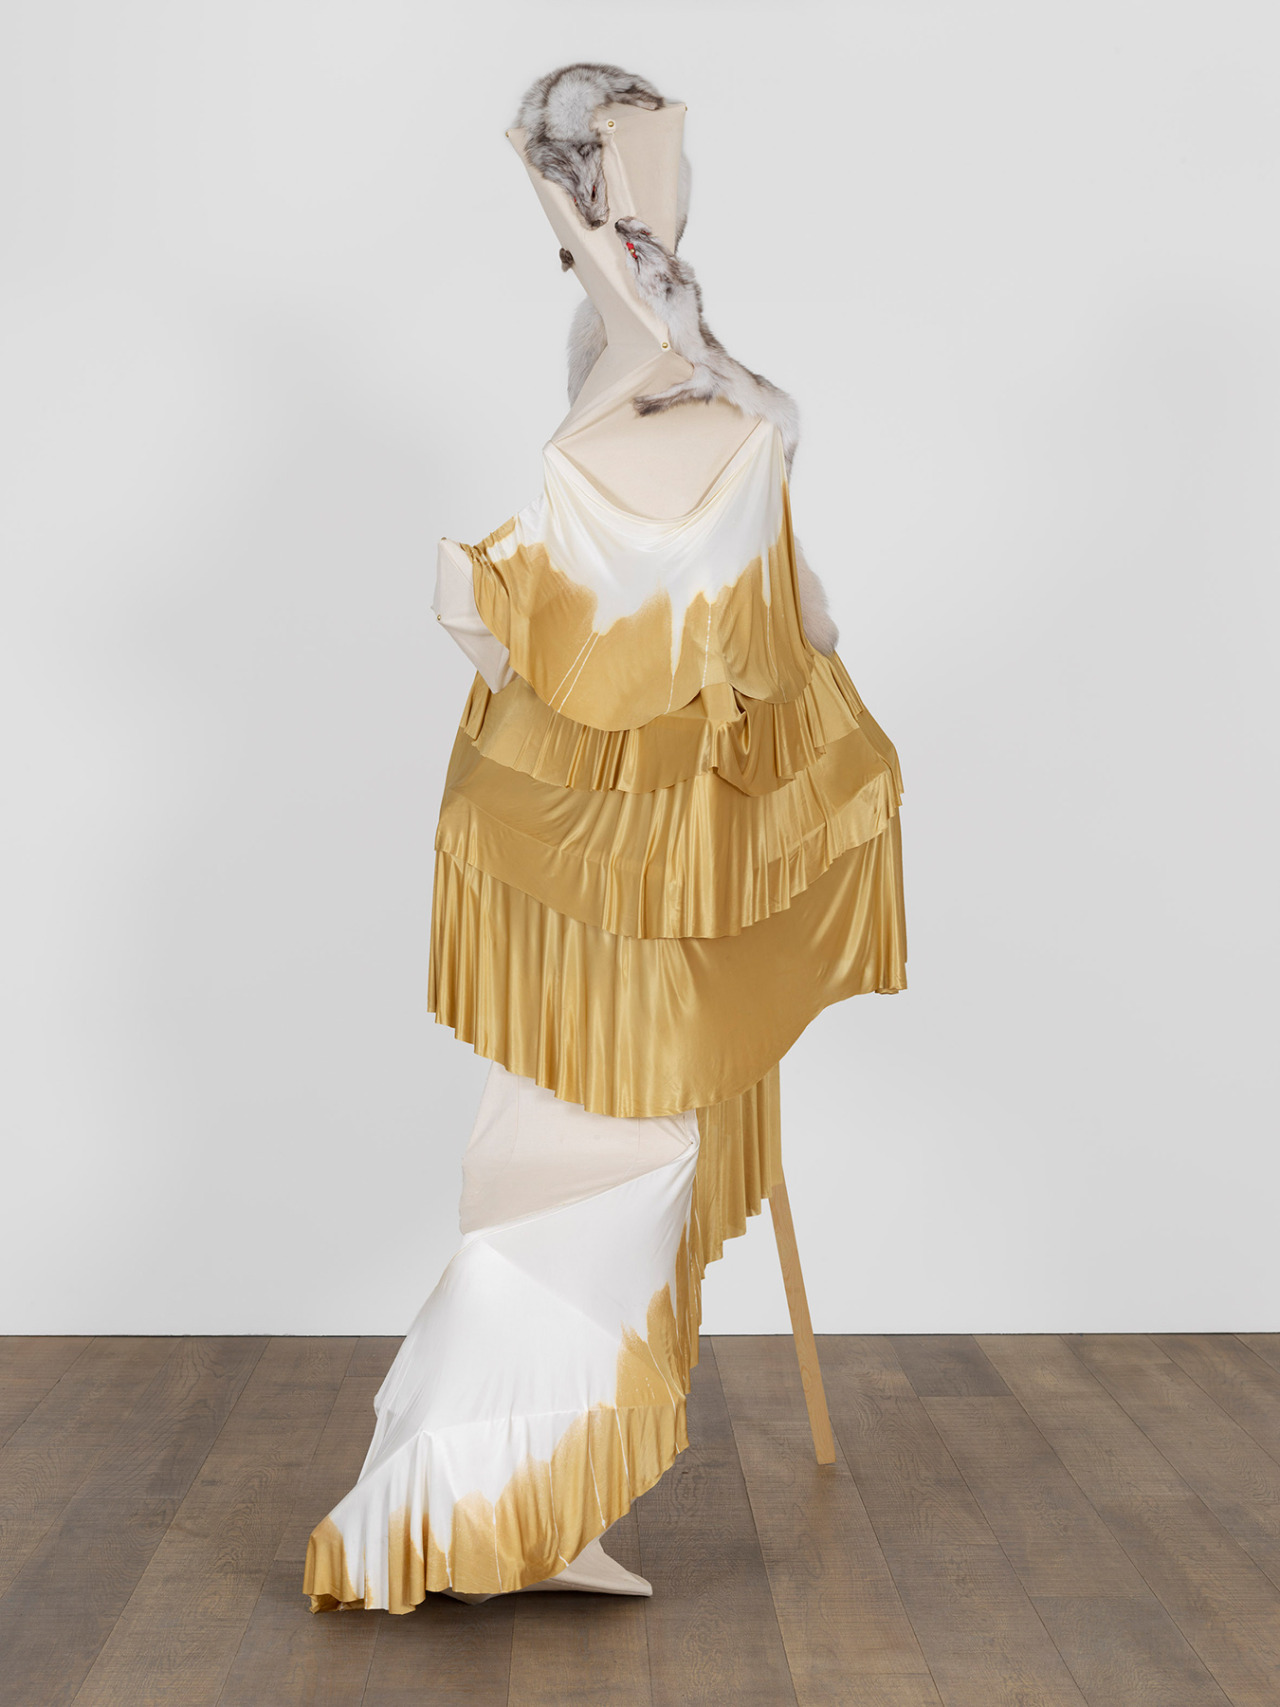 Lara Schnitger, Foxy Margarita, 2010 fabric, wood, fur, 114 1/8 × 65 × 43 1/4 inches Download Image Visit Source @ modernart.net